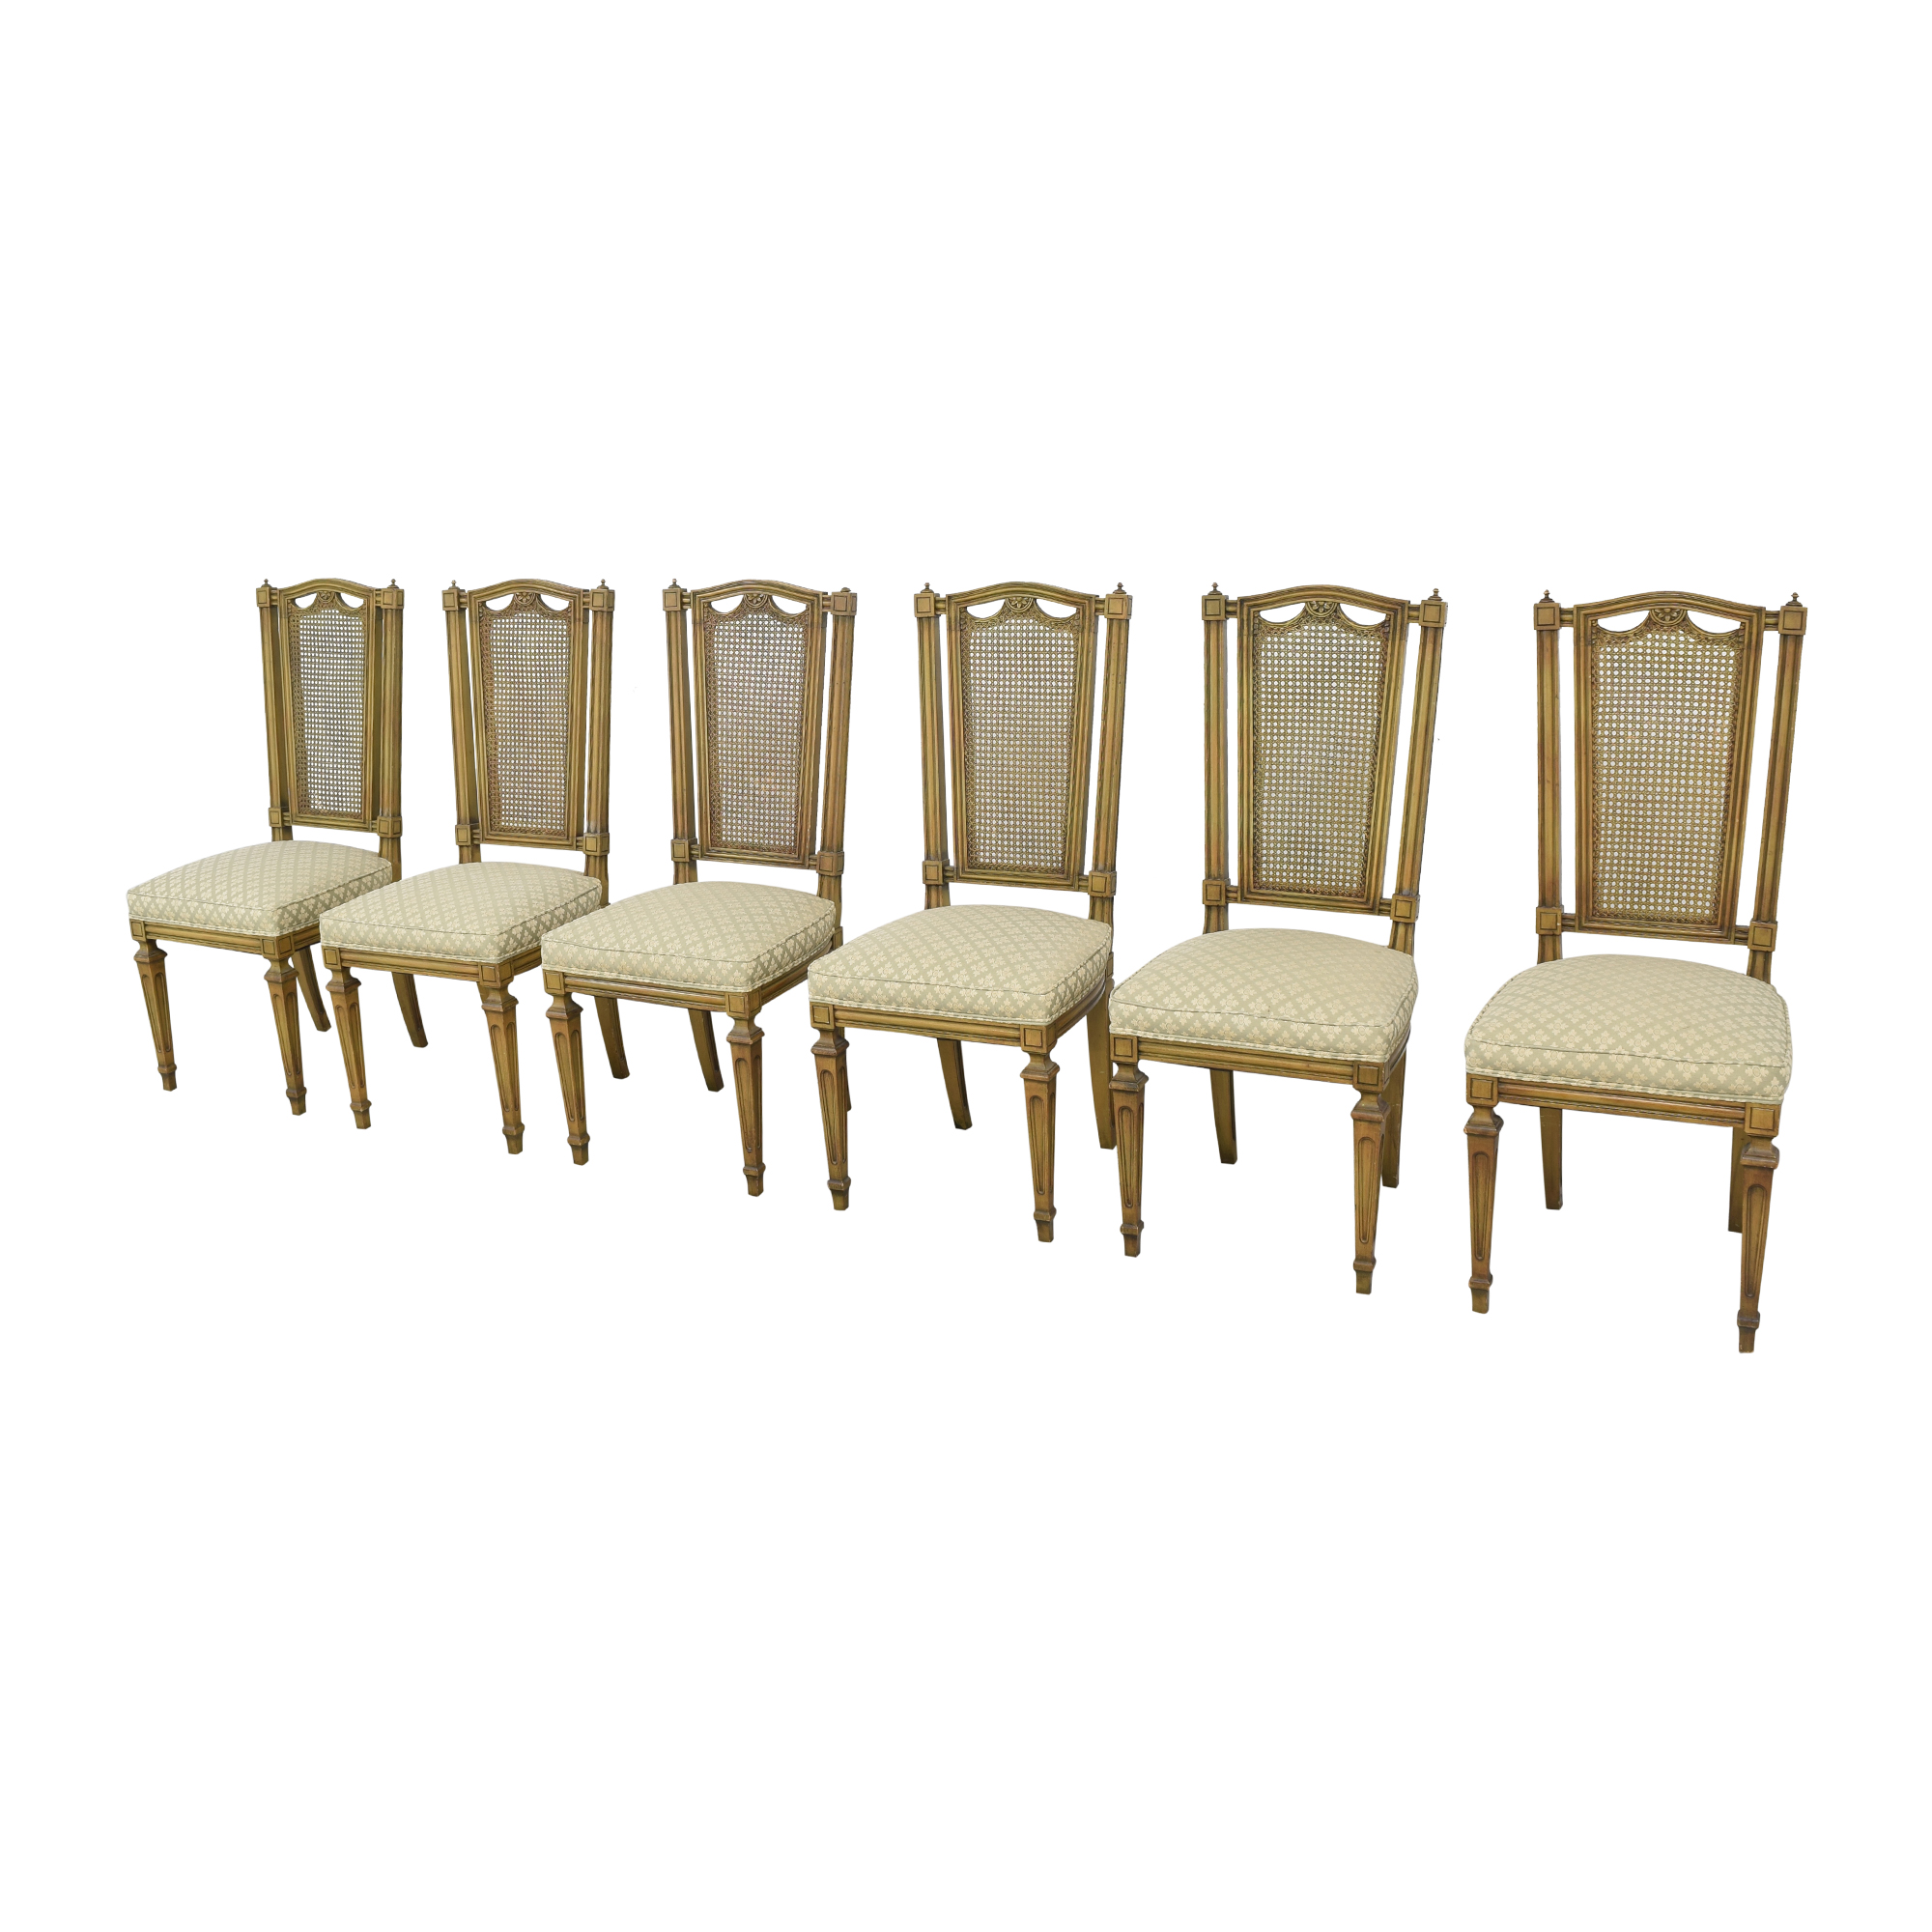 Dining Room Chairs used